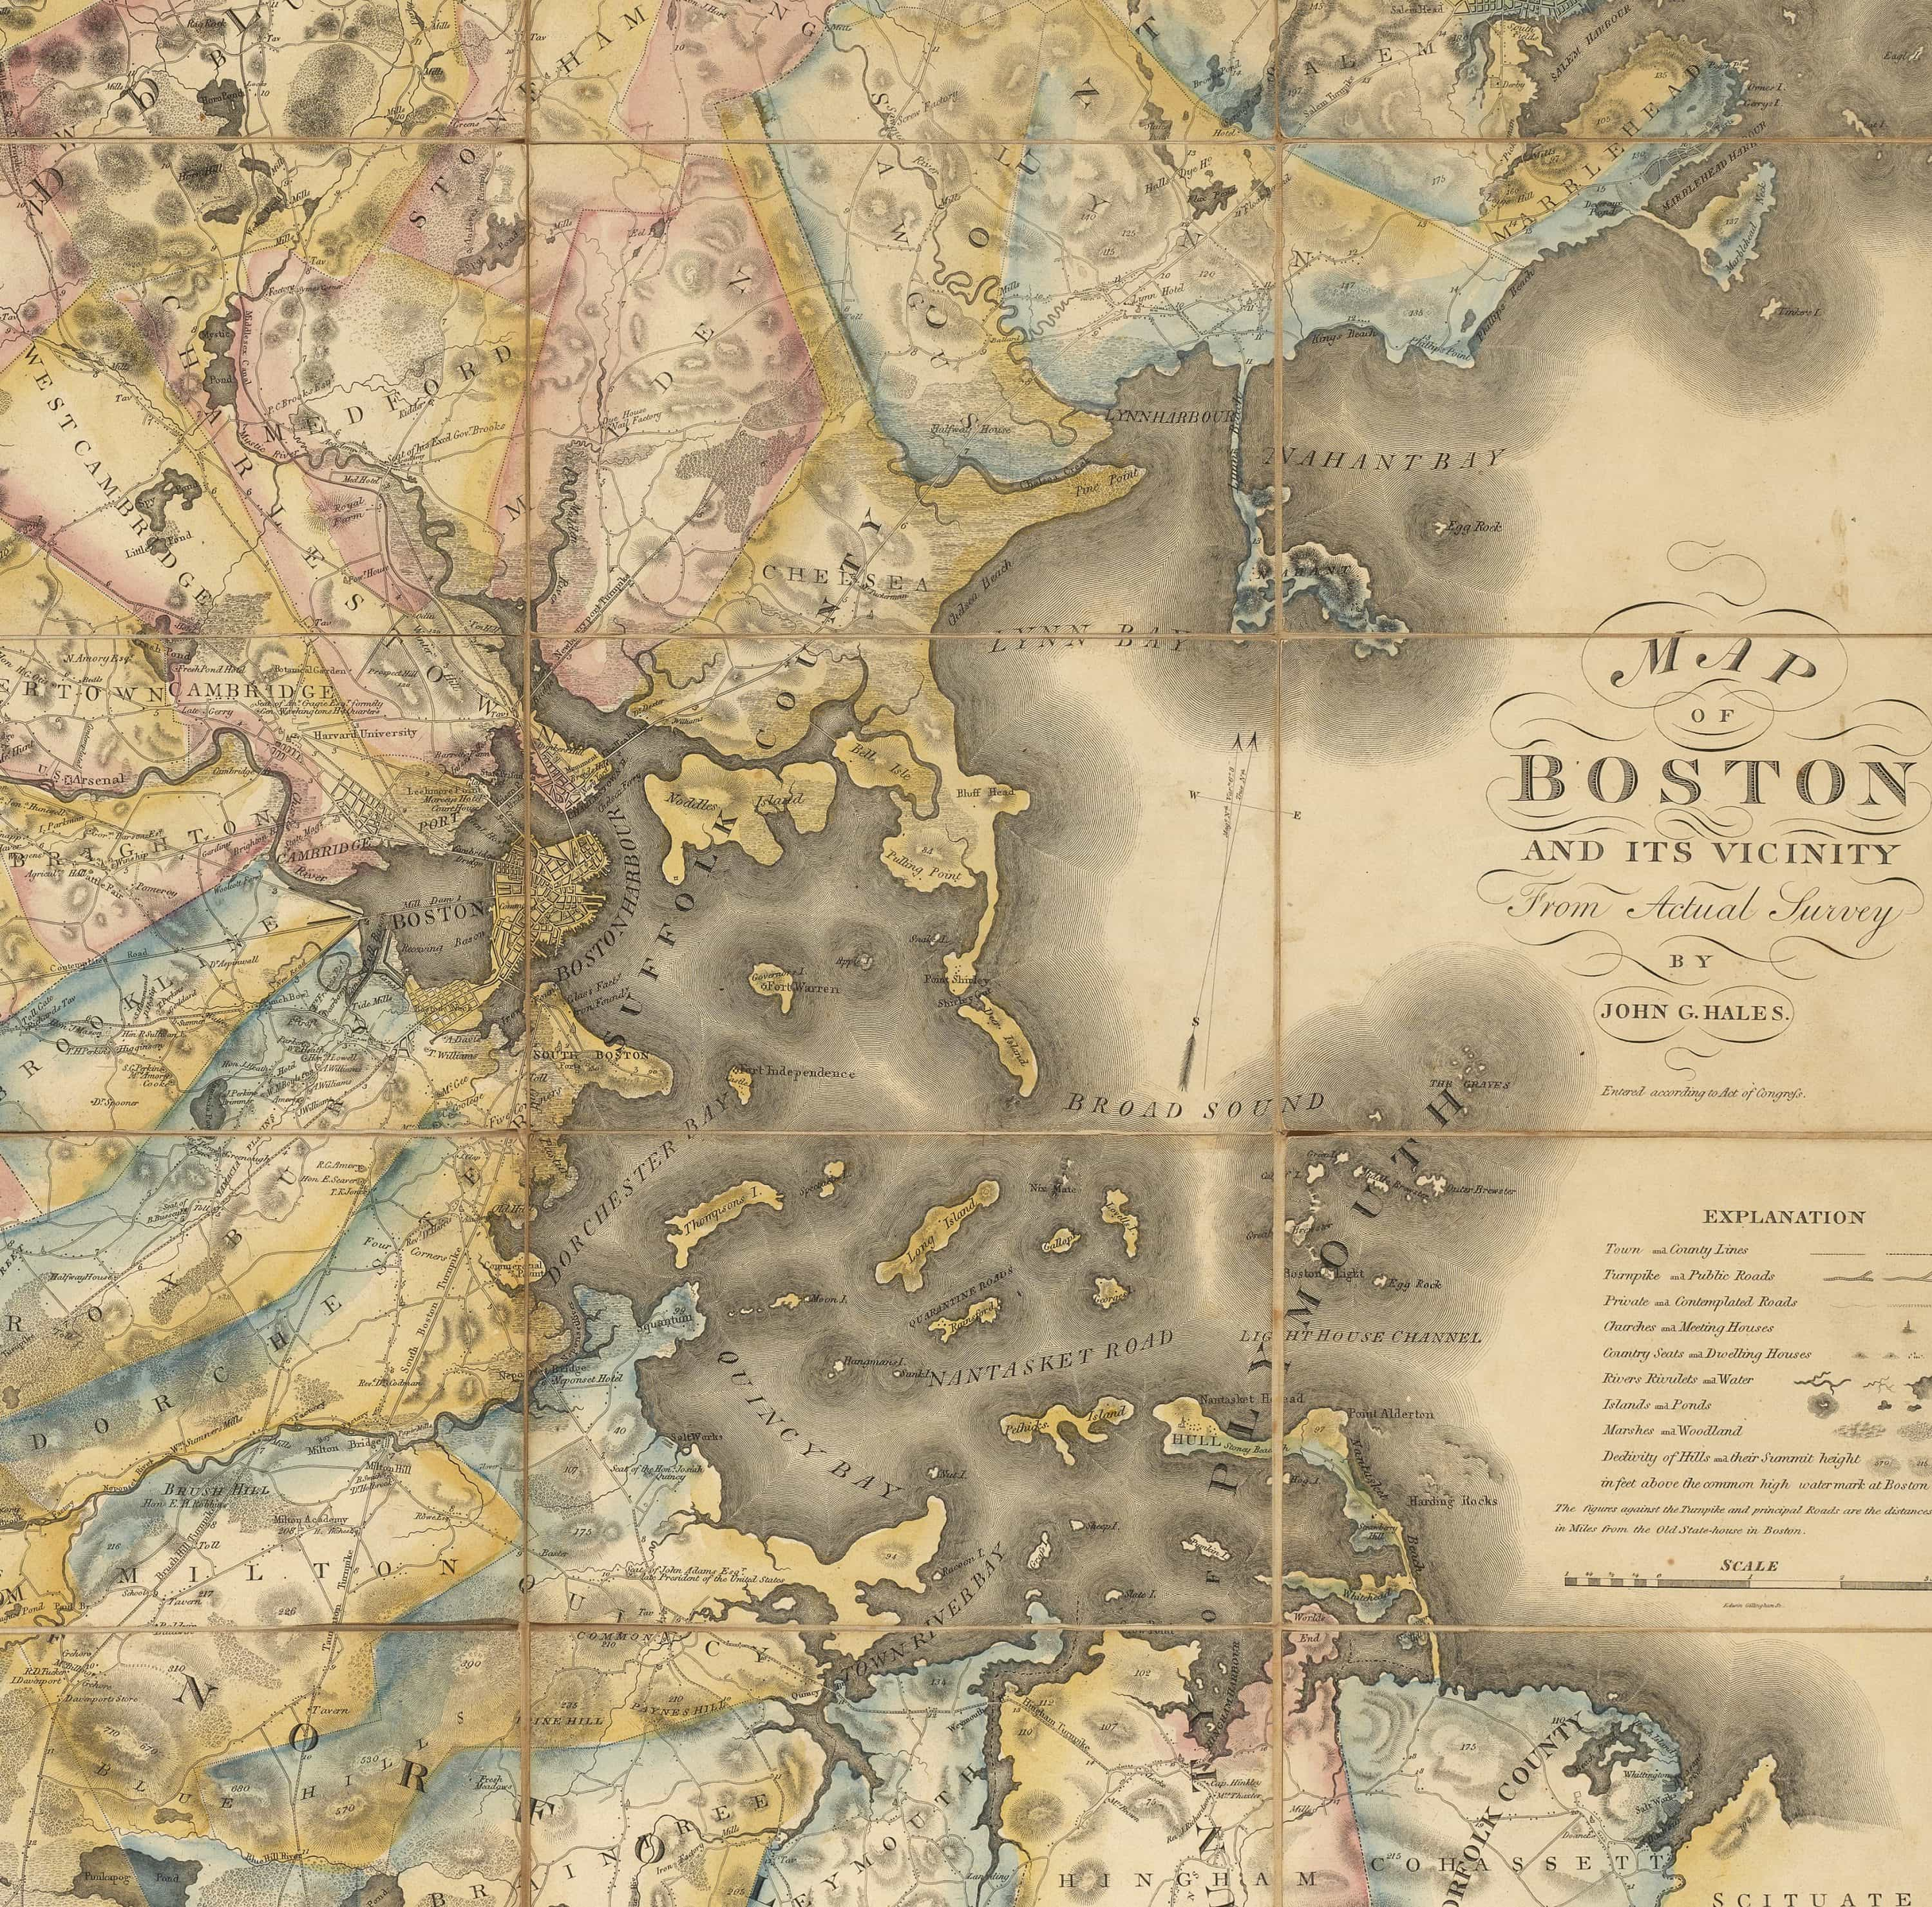 Superb map of the Boston area by John G Hales Rare Antique Maps